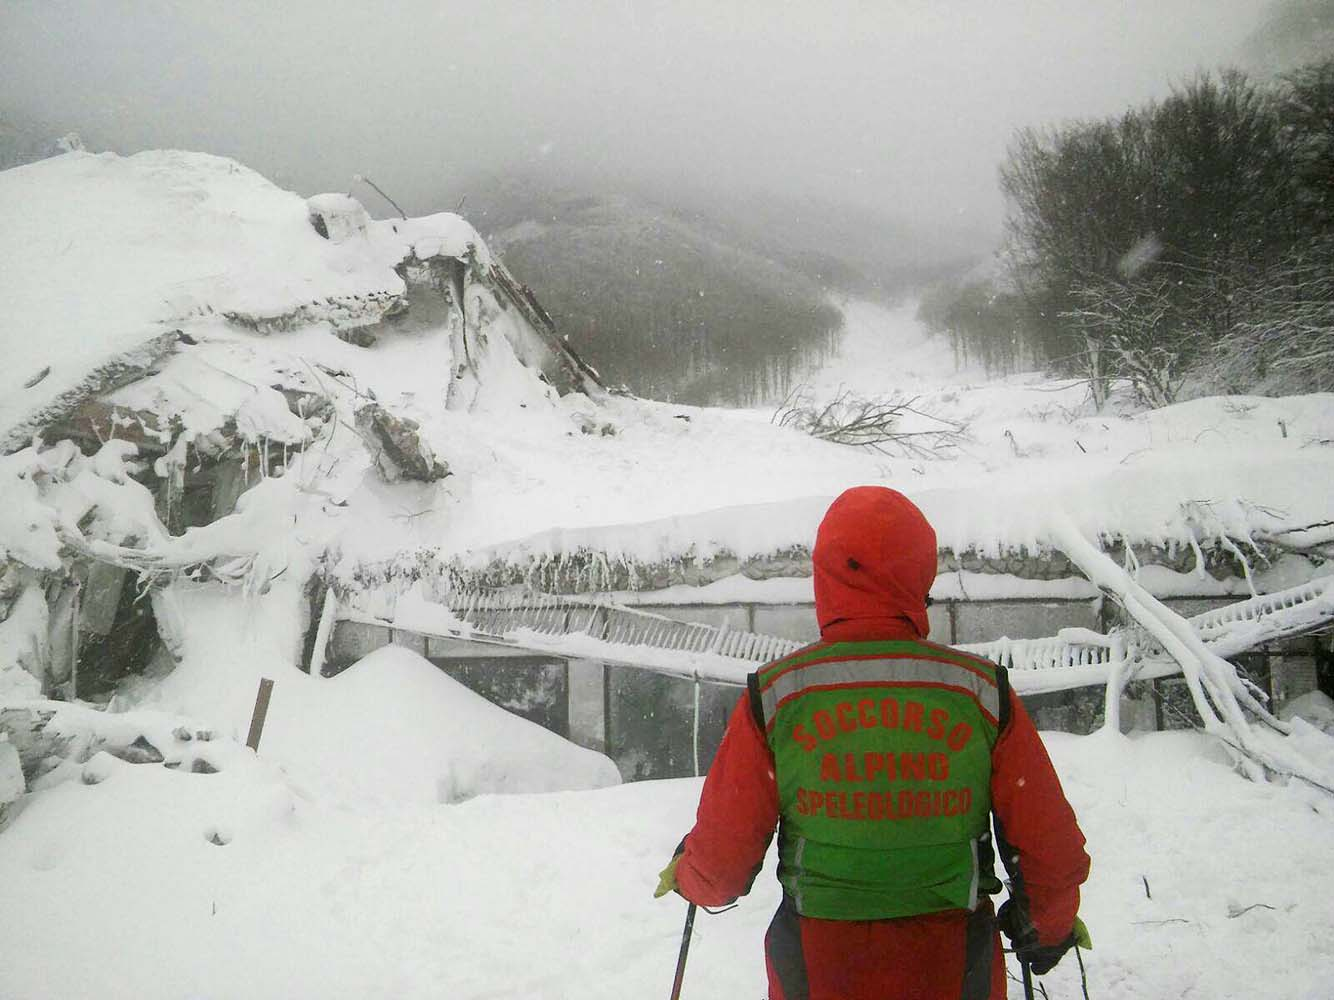 A member of Lazio's Alpine and Speleological Rescue Team stands in front of the Hotel Rigopiano in Farindola, central Italy, hit by an avalanche, in this January 19, 2017 handout picture provided by Lazio's Alpine and Speleological Rescue Team. Soccorso Alpino Speleologico Lazio/Handout via REUTERS ATTENTION EDITORS - THIS IMAGE WAS PROVIDED BY A THIRD PARTY. IT WAS PROCESSED BY REUTERS TO ENHANCE QUALITY. AN UNPROCESSED VERSION HAS BEEN PROVIDED SEPARATELY. EDITORIAL USE ONLY. NO RESALES. NO ARCHIVE. TPX IMAGES OF THE DAY